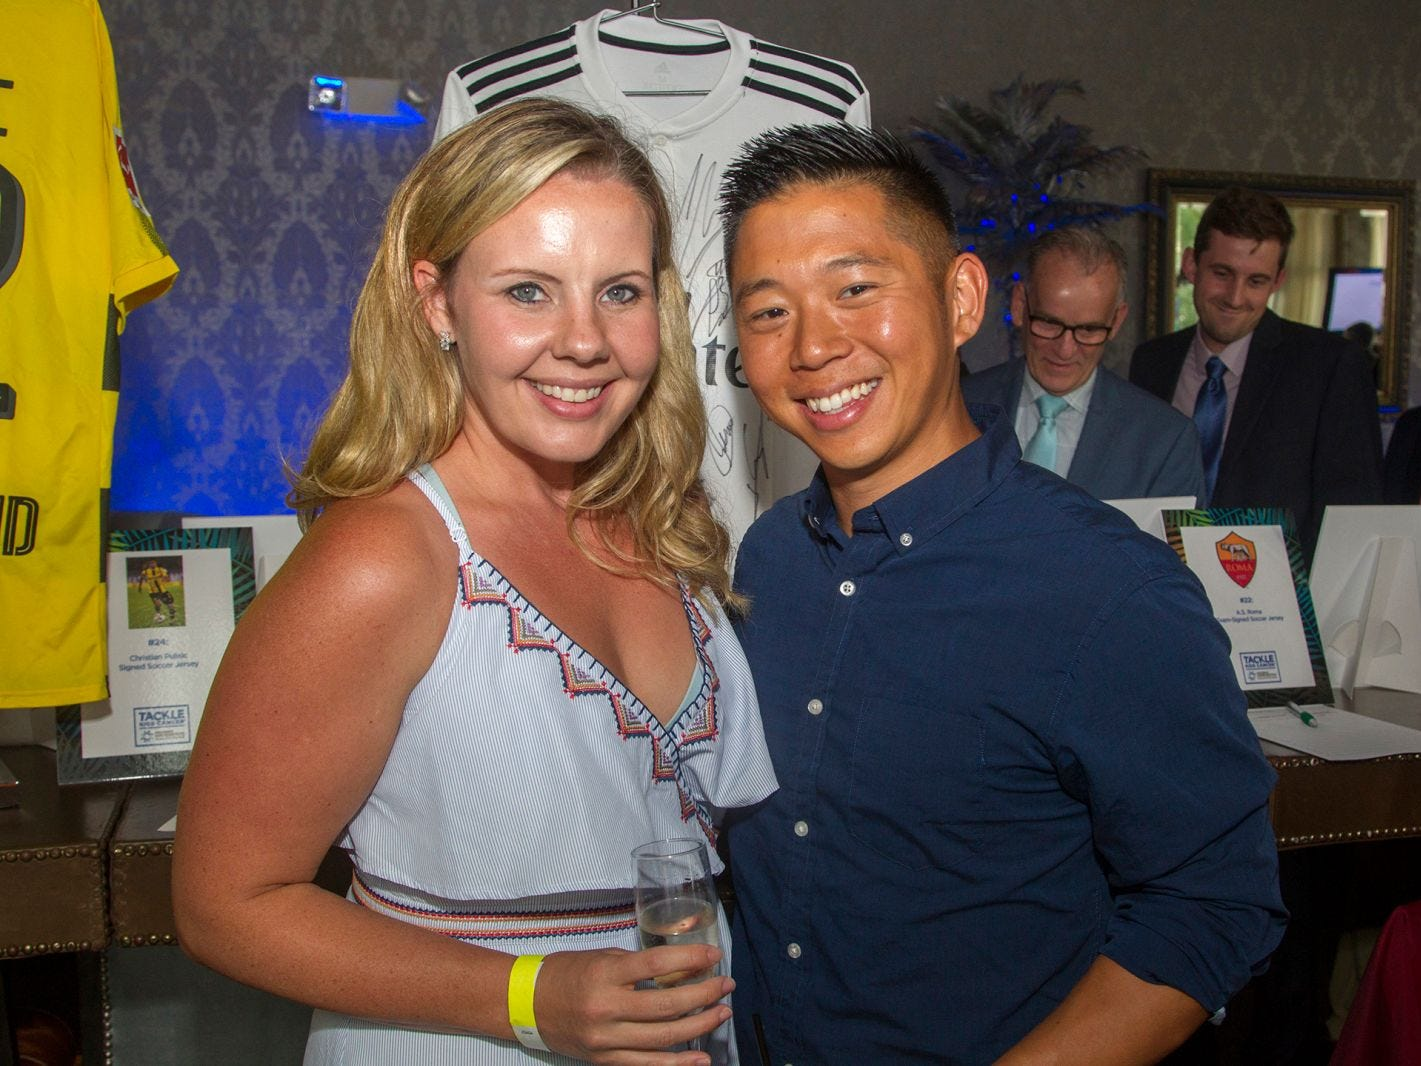 Erin and Mark Wan. Summer Samba Night benefitting Tackle Kids Cancer hosted by Cara Robles, Luis Robles (NY Red Bulls Goalkeeper), Jennifer Farber, and Dr. Michael Farber at Son Cubano in West New York. 08/08/2018